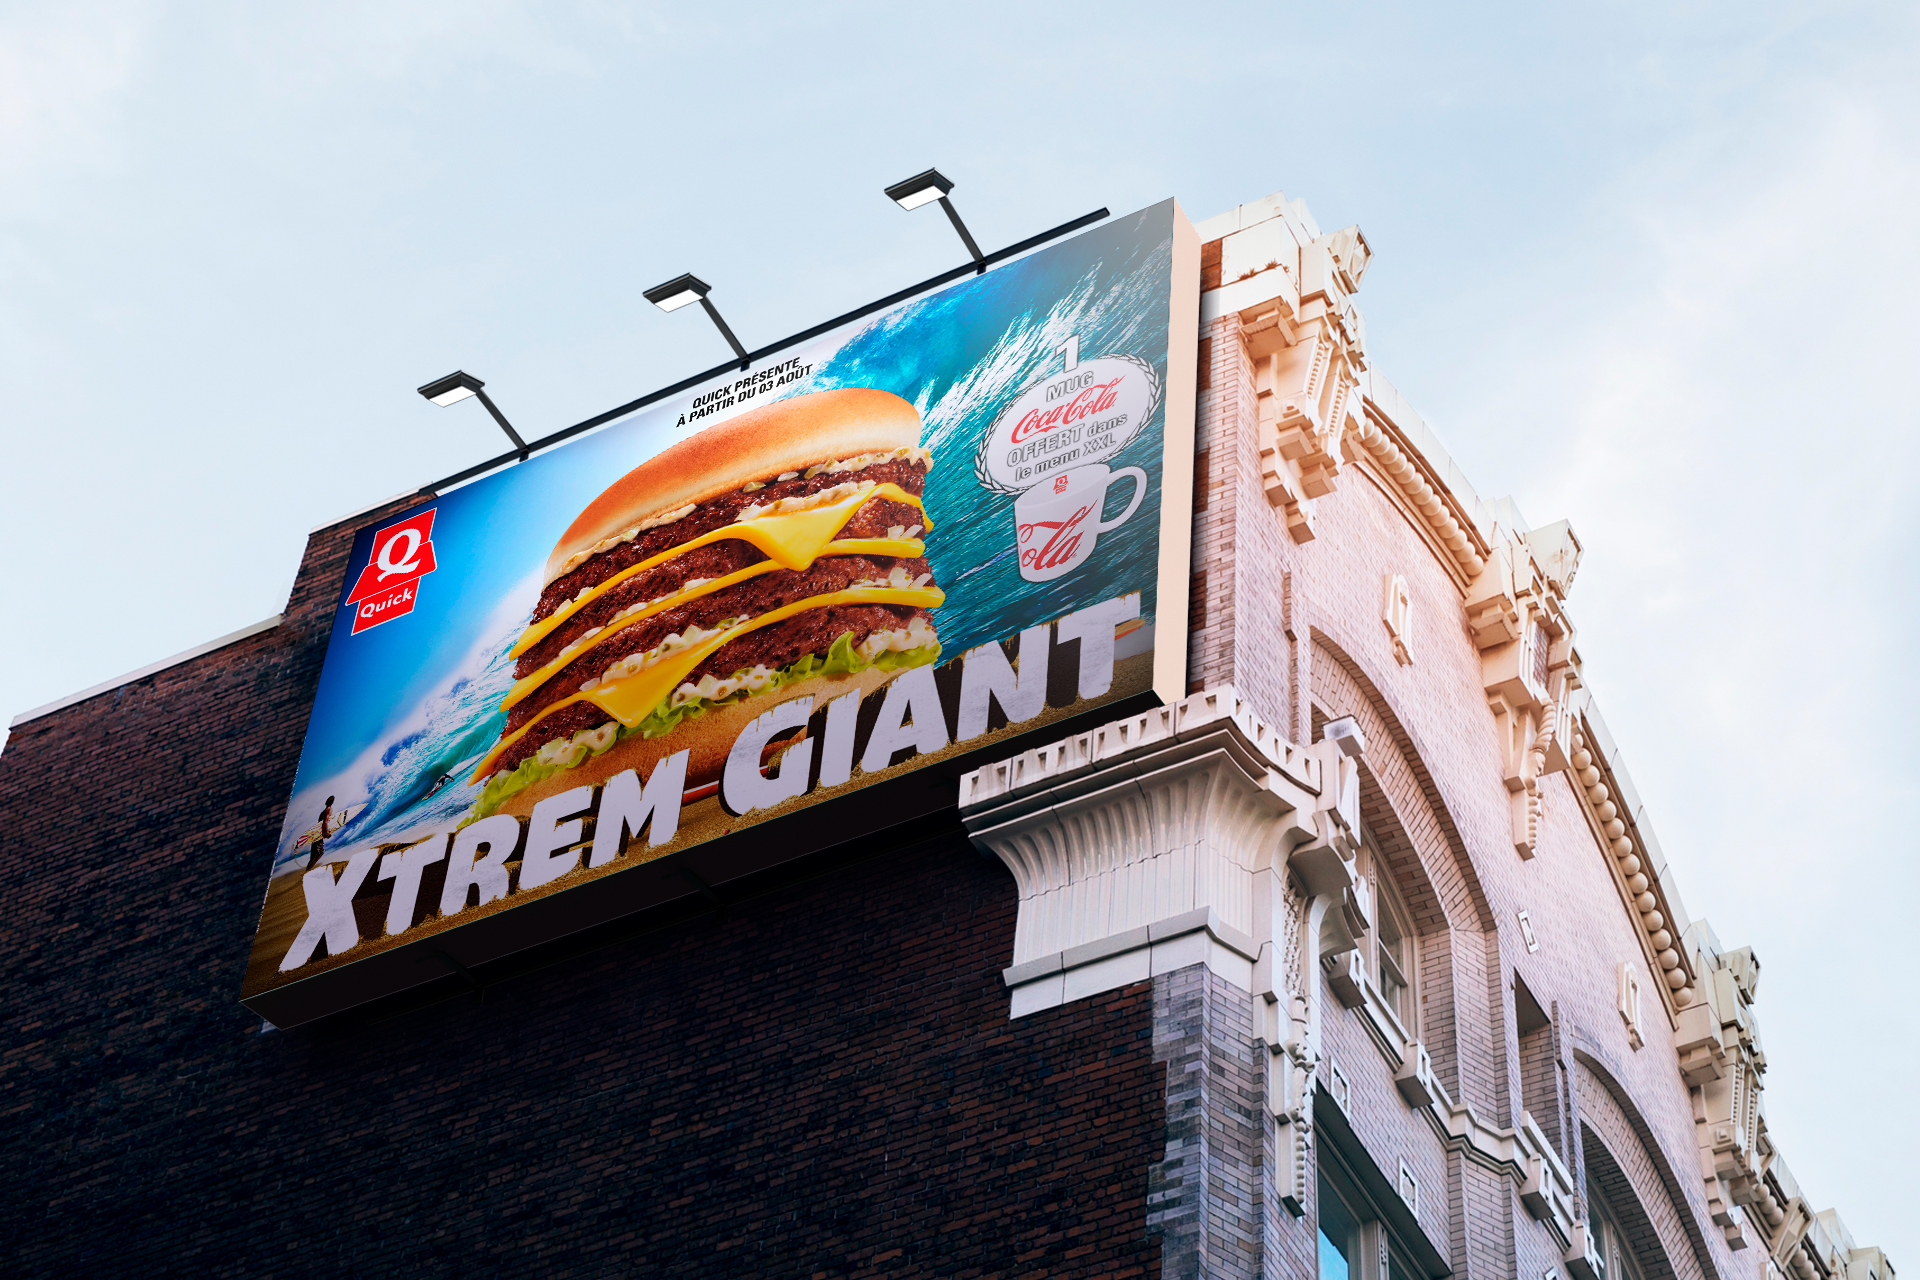 1920x1280_billboard_xtrem